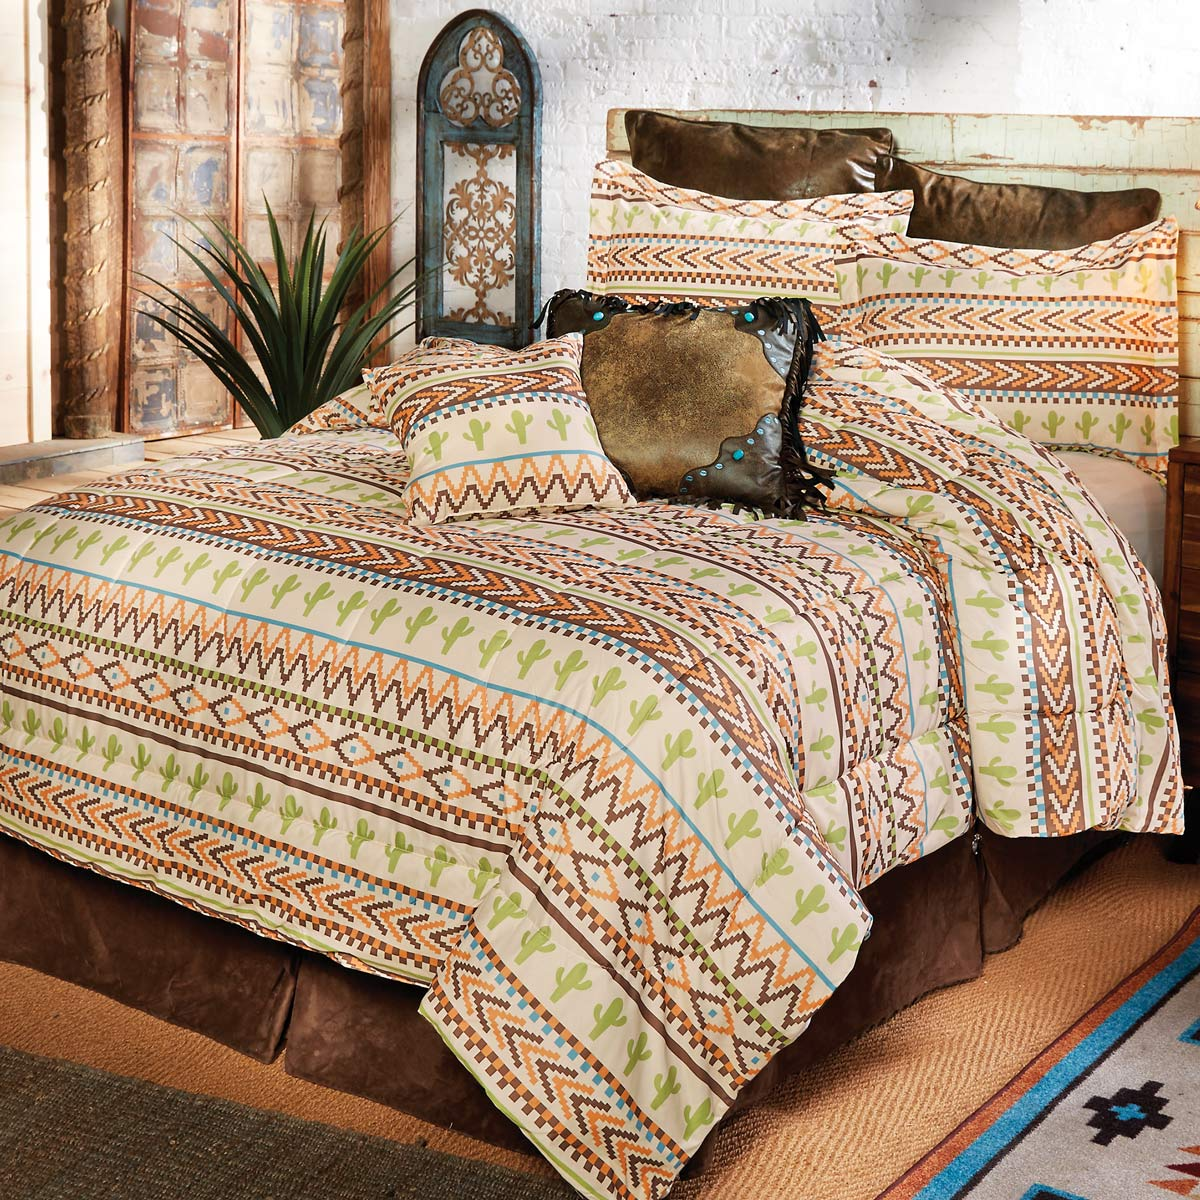 Joshua Stripe Cactus Bed Set - Queen - CLEARANCE